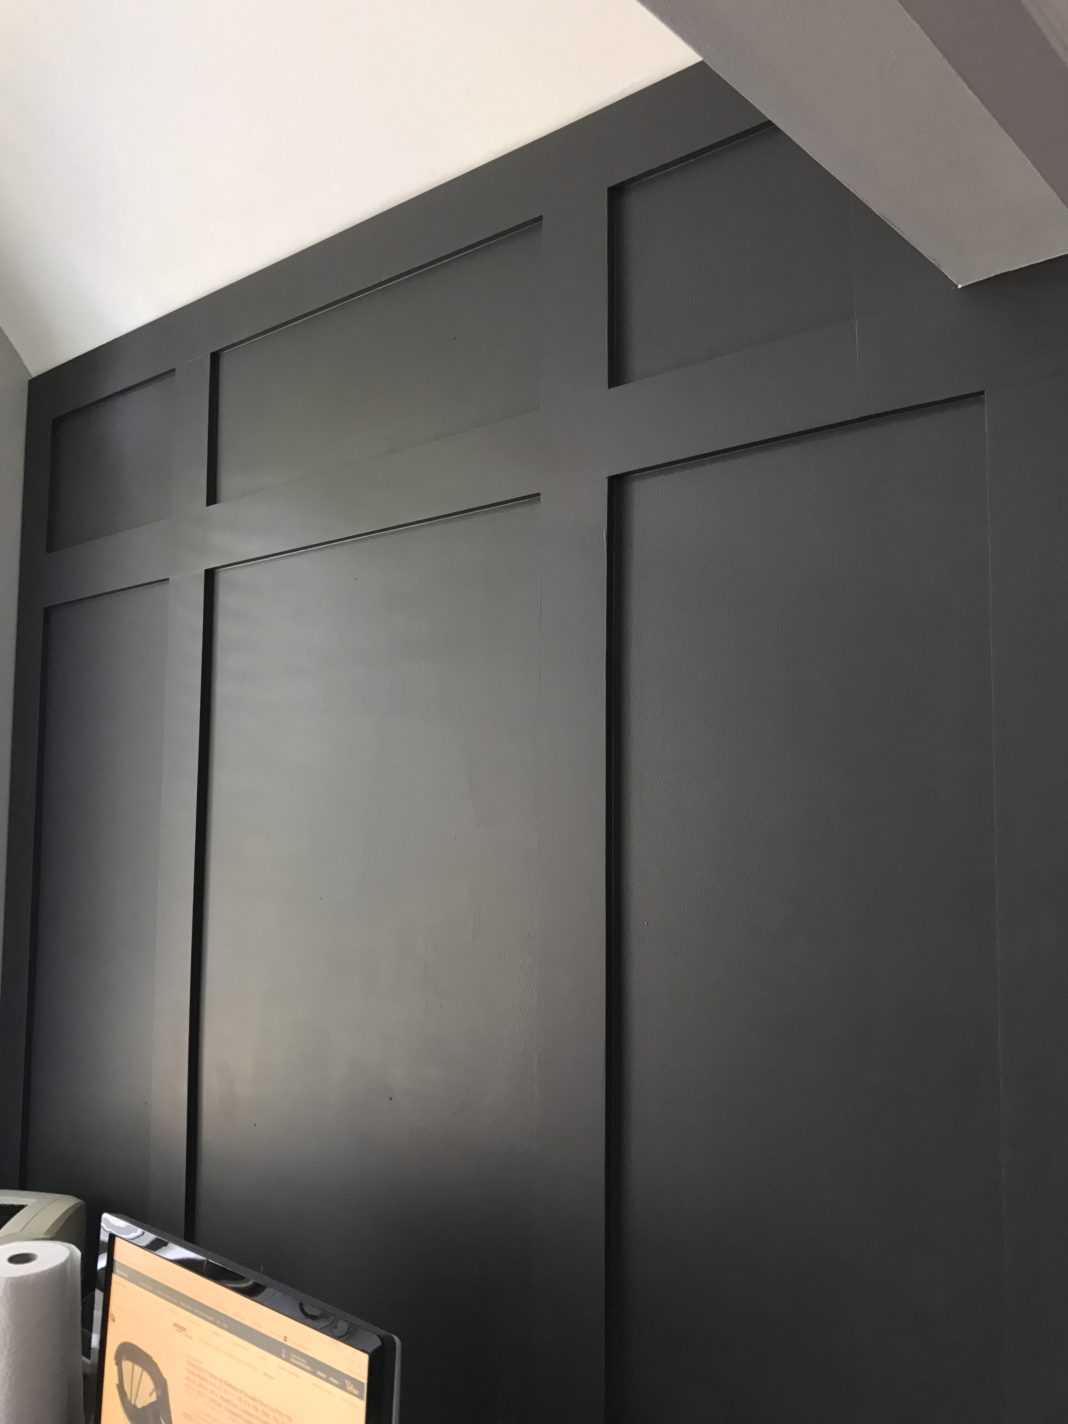 DIY Board and Batten | Update with Wood Trim | Benjamin Moore Mopboard Black | Black Walls